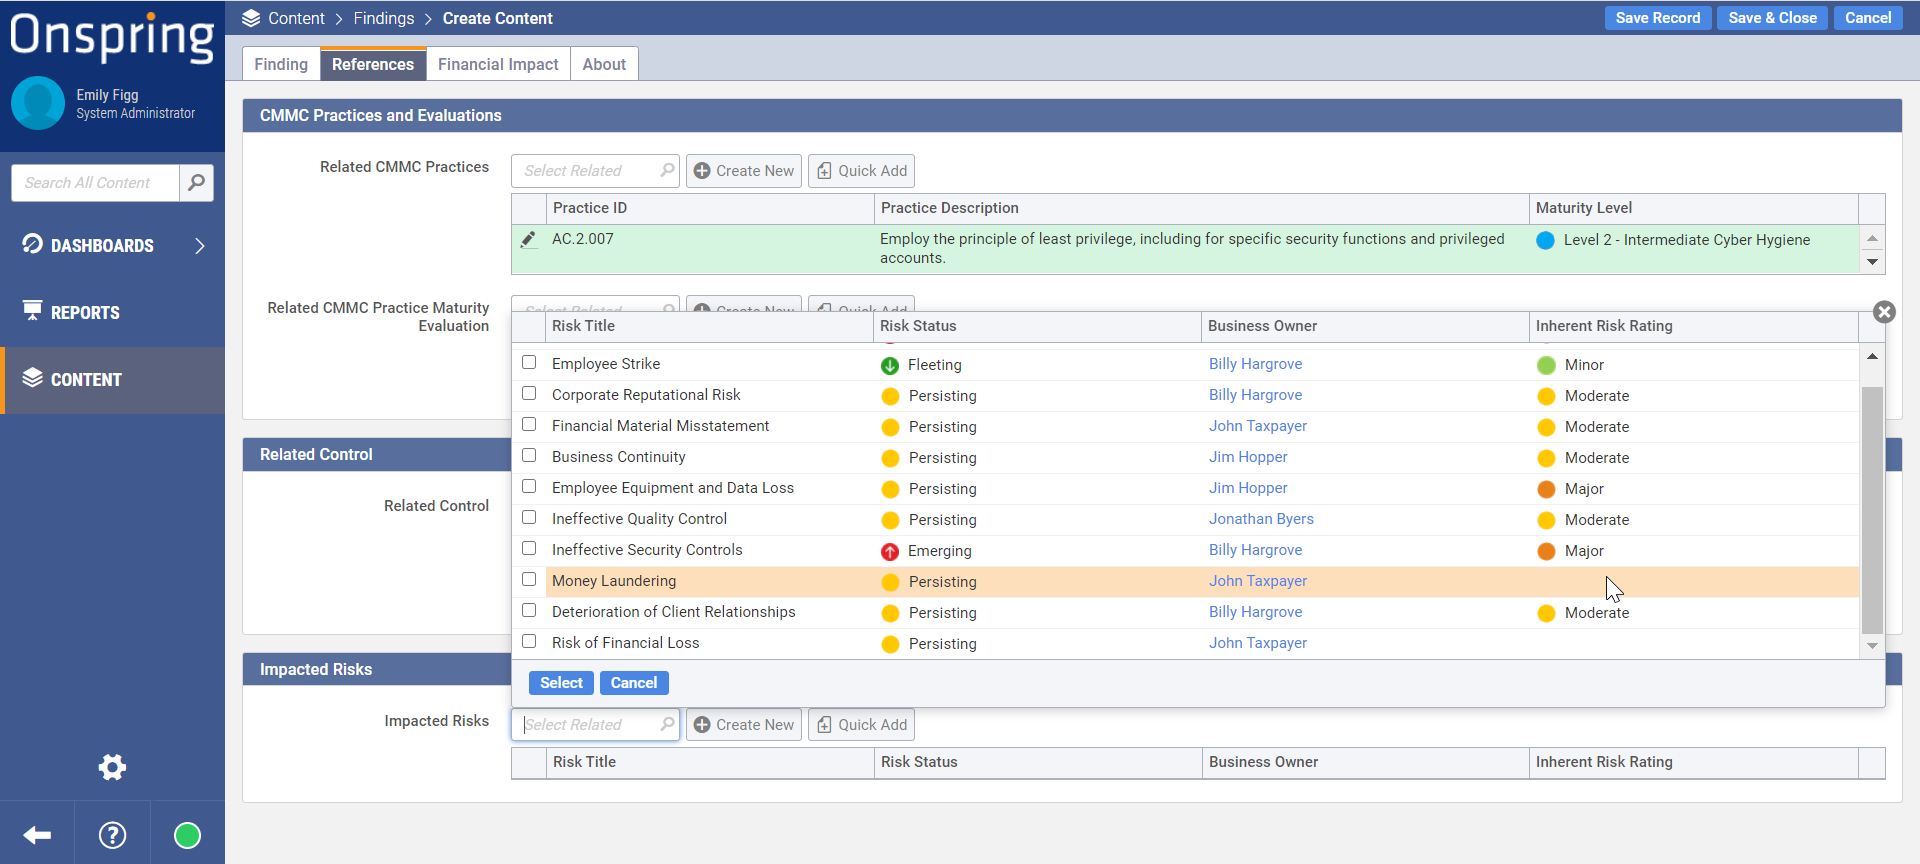 Relating Controls to Risks and Regs in Onspring Automation Software